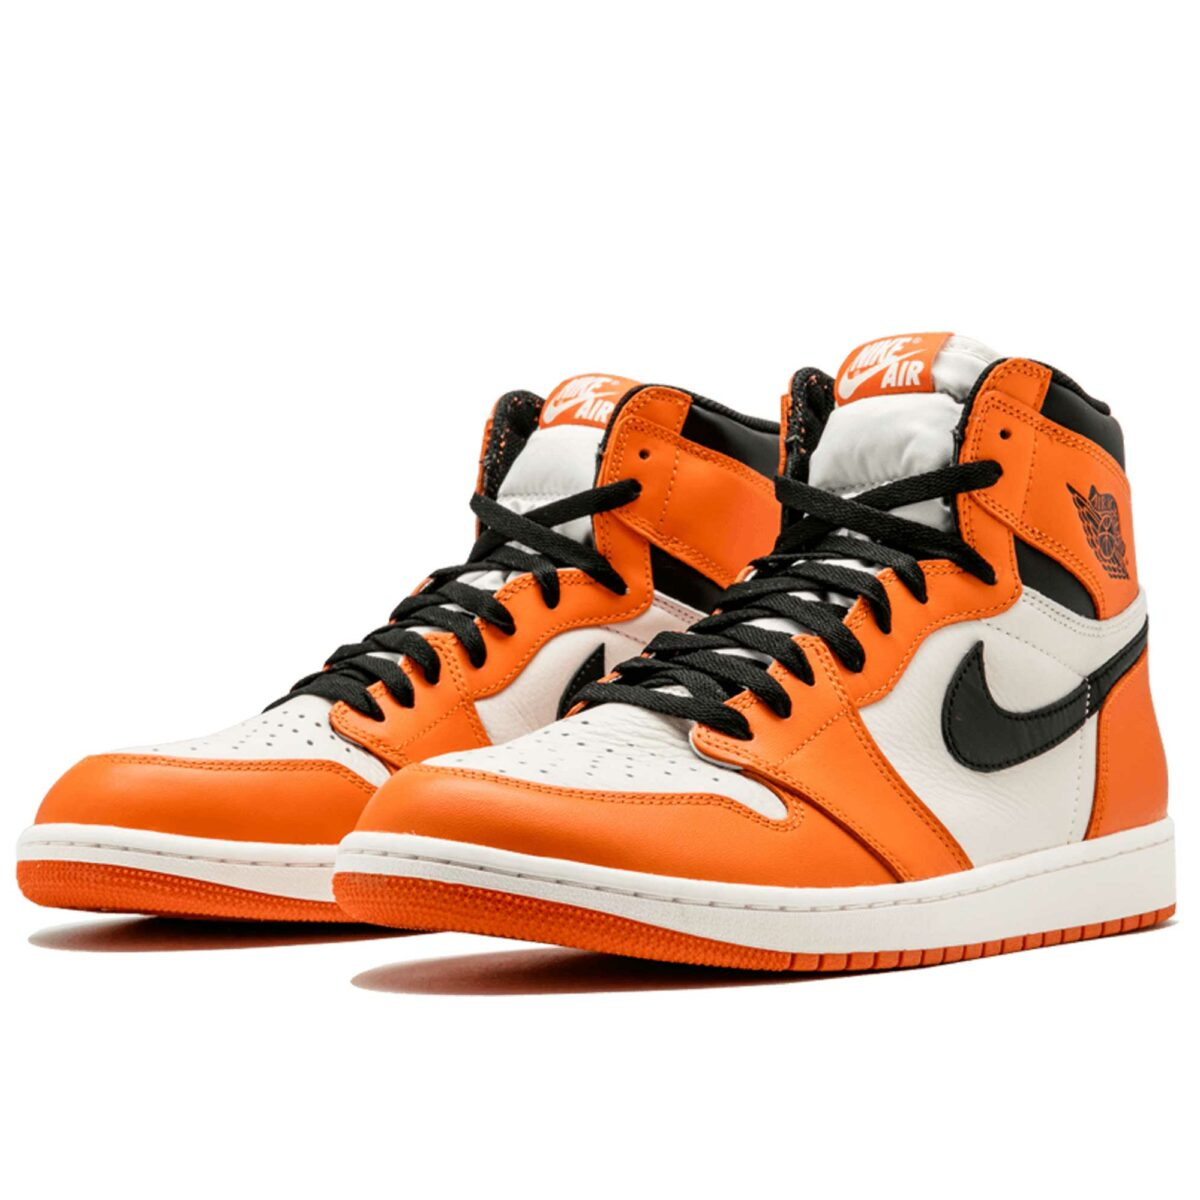 air jordan 1 retro high og orange 555088_113 купить